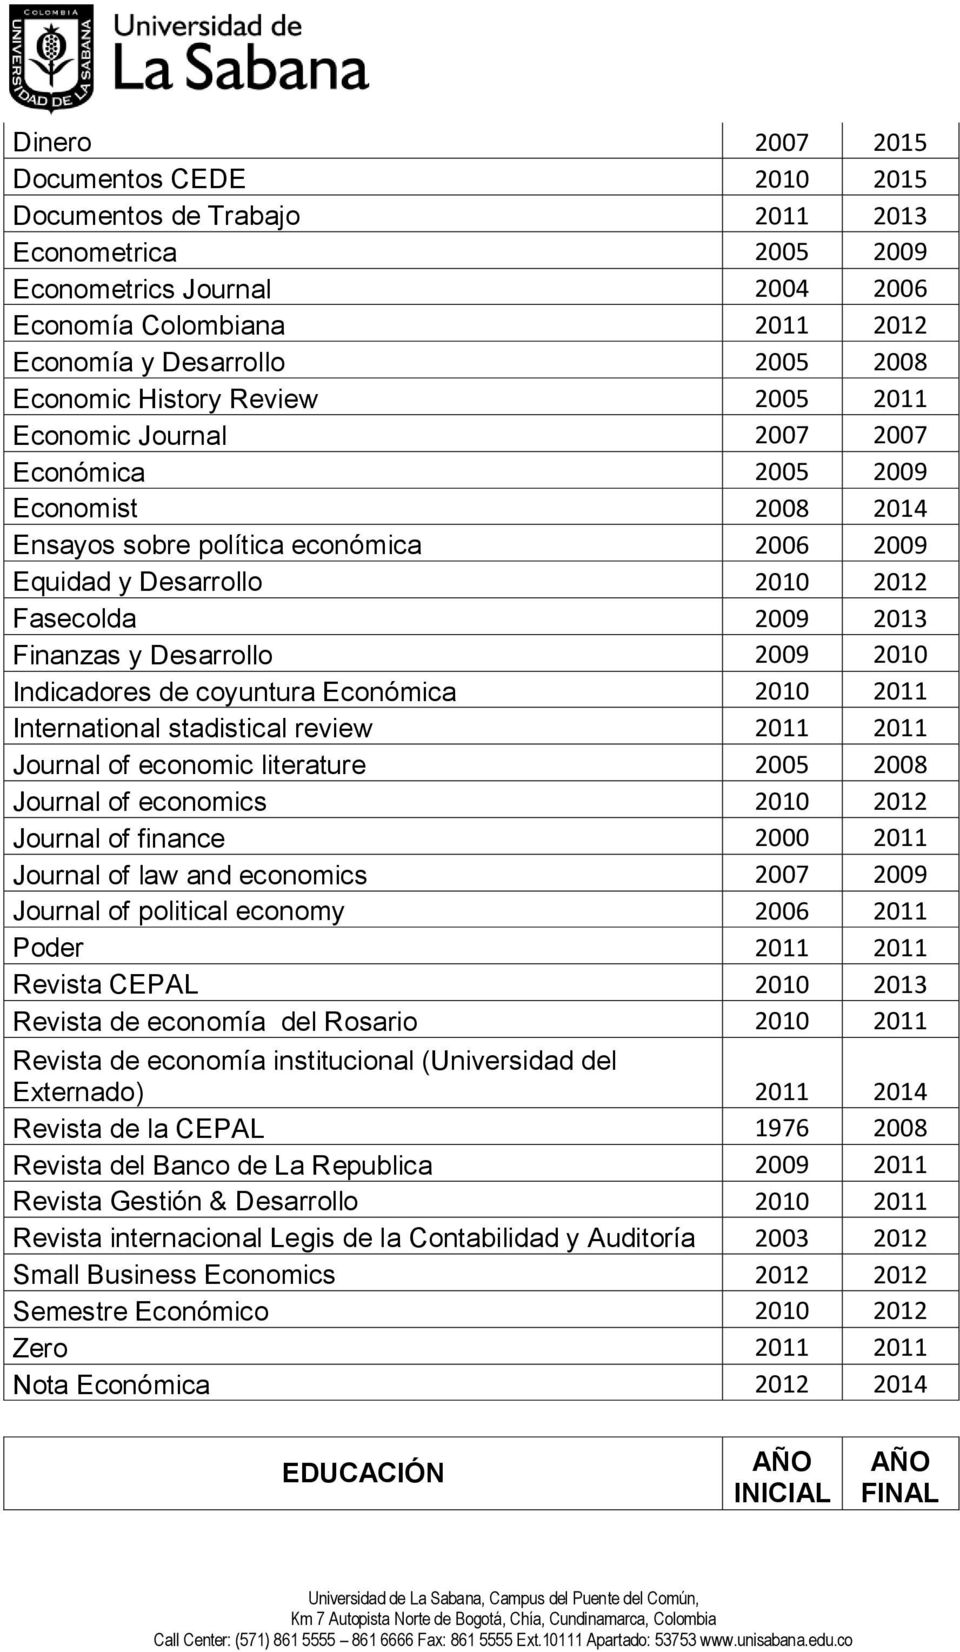 Desarrollo 2009 2010 Indicadores de coyuntura Económica 2010 2011 International stadistical review 2011 2011 Journal of economic literature 2005 2008 Journal of economics 2010 2012 Journal of finance